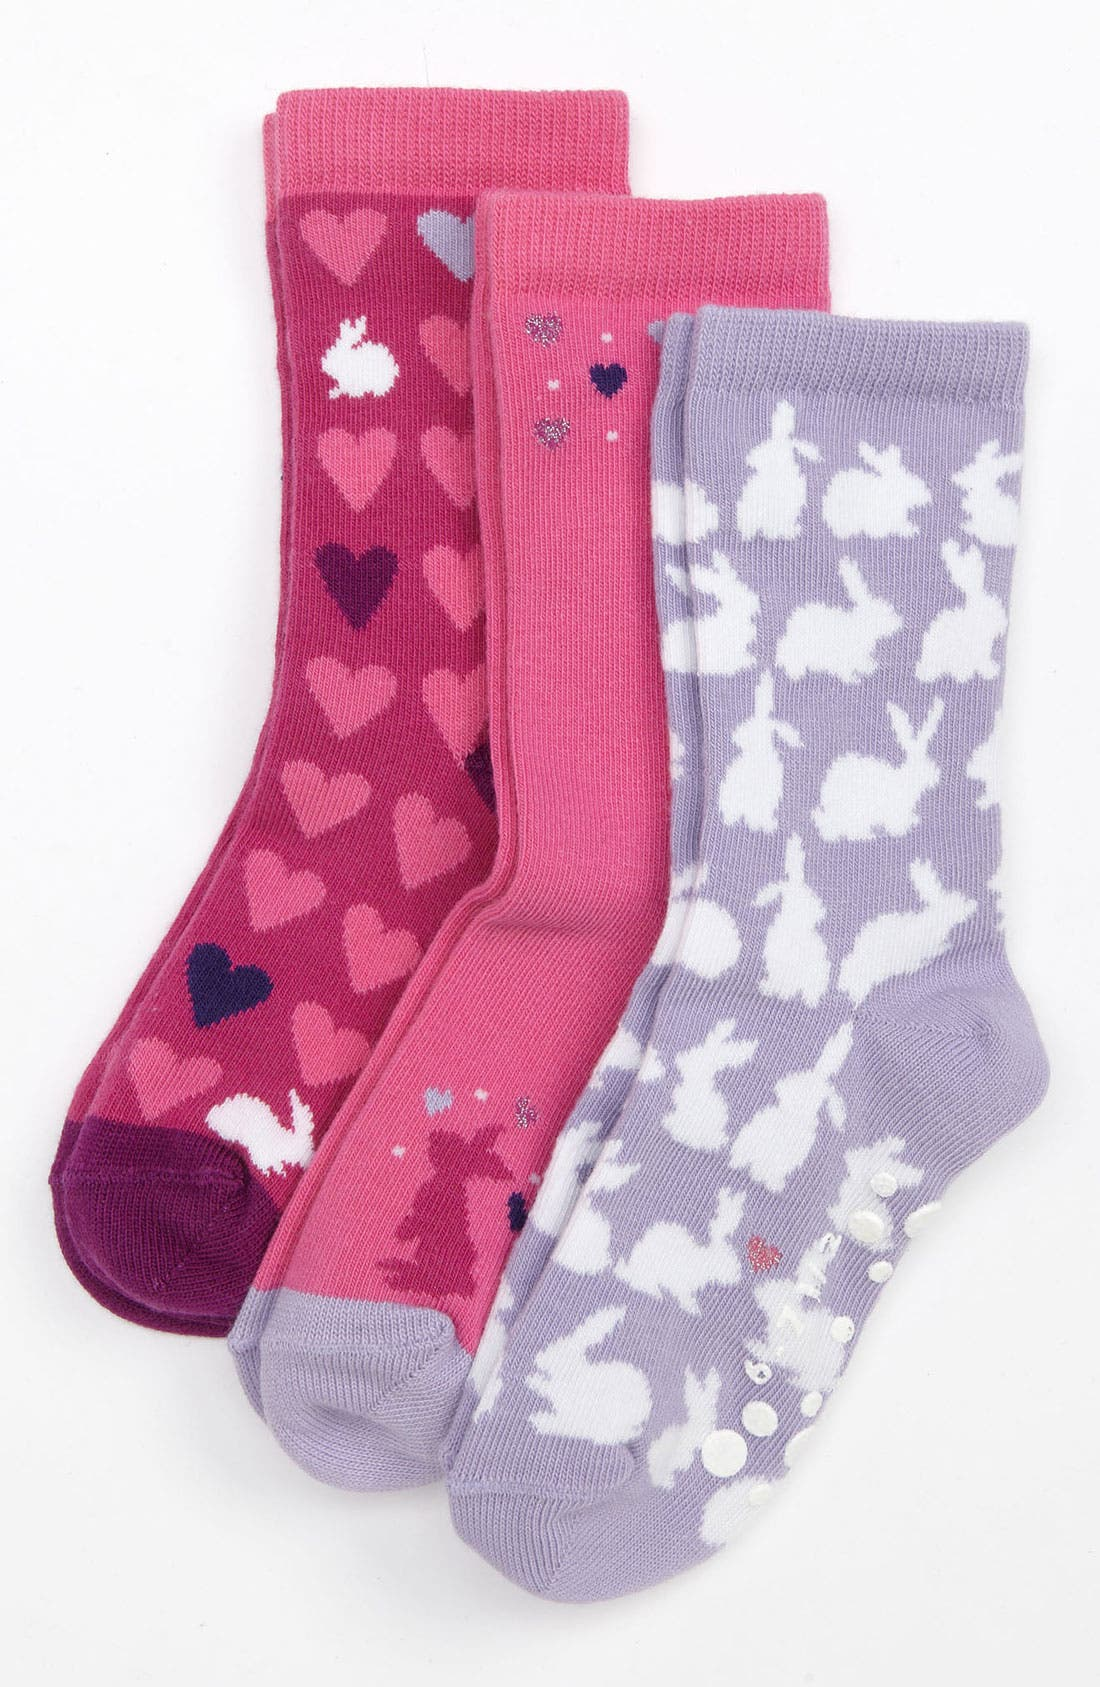 Main Image - Nordstrom 'Bunny Love' Crew Socks (3-Pack) (Girls)